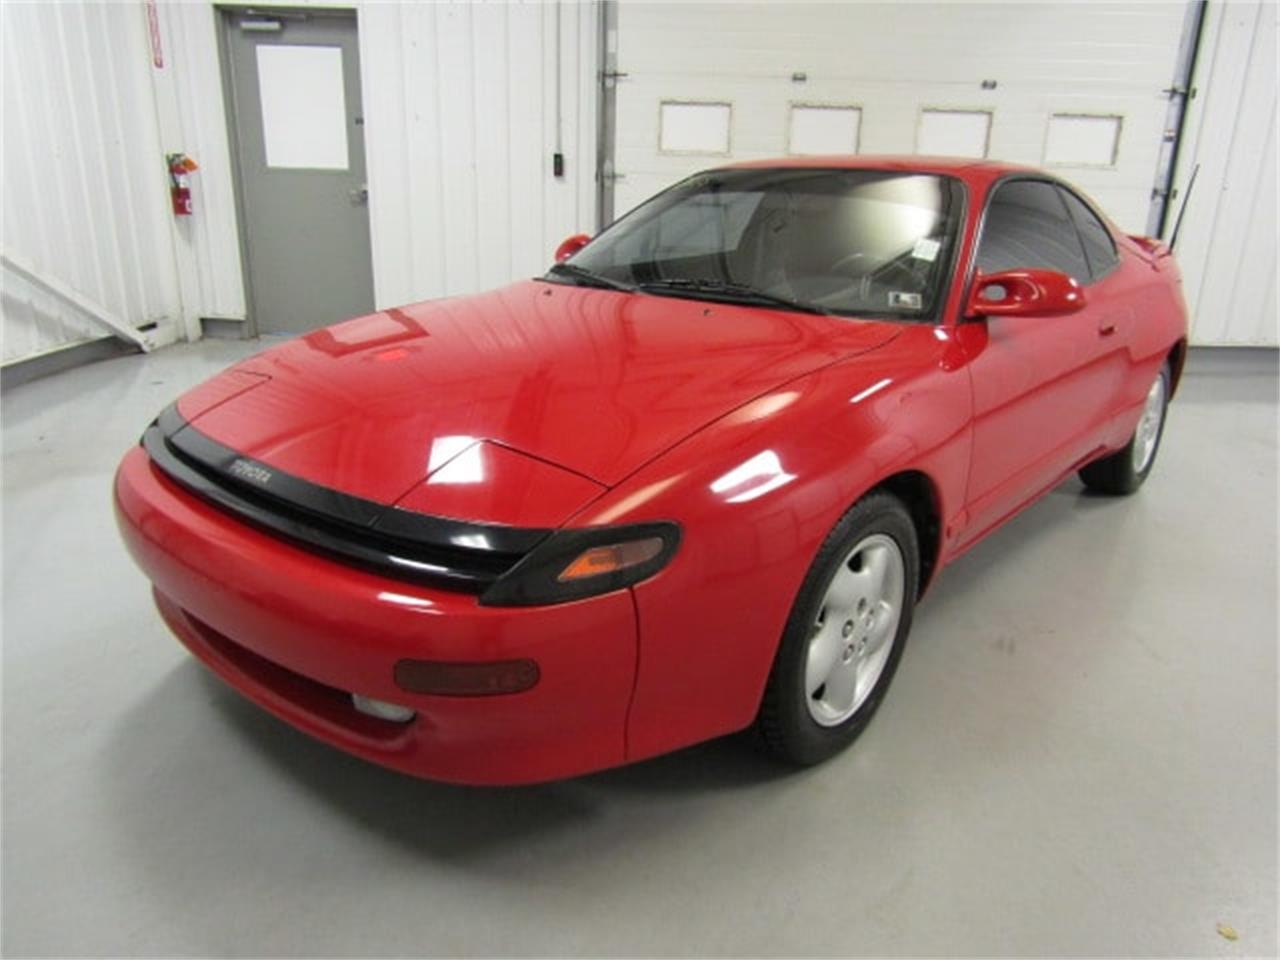 Large Picture of 1990 Toyota Celica - $7,918.00 - LI31